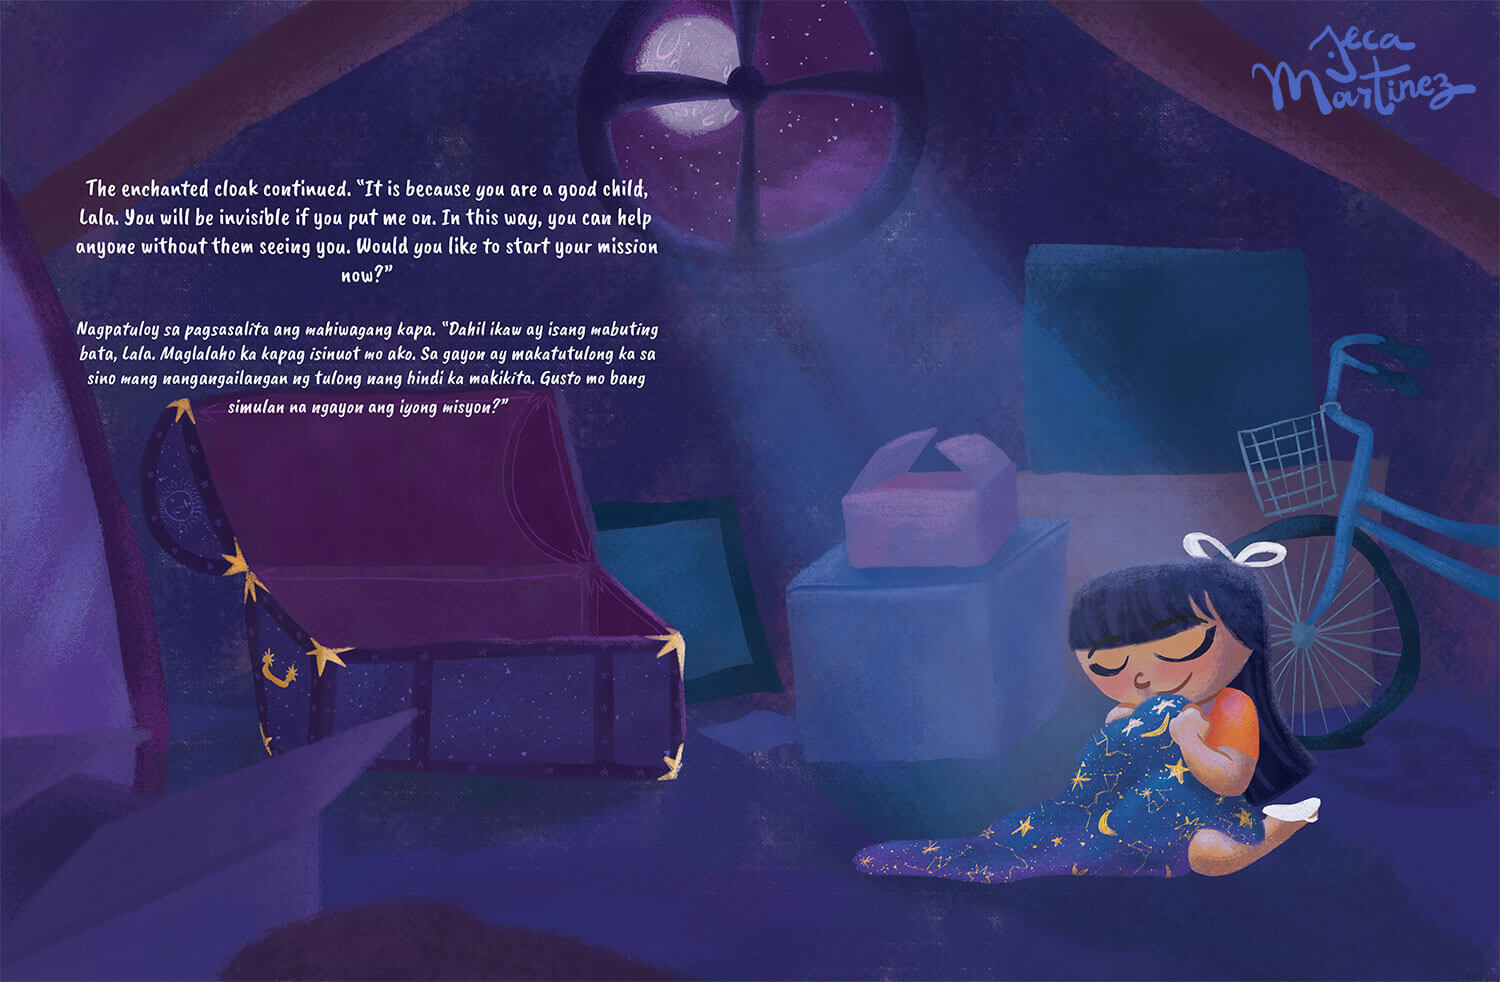 Children's Book Illustration by Jeca Martinez for Lala and the Enchanted Cloak 4